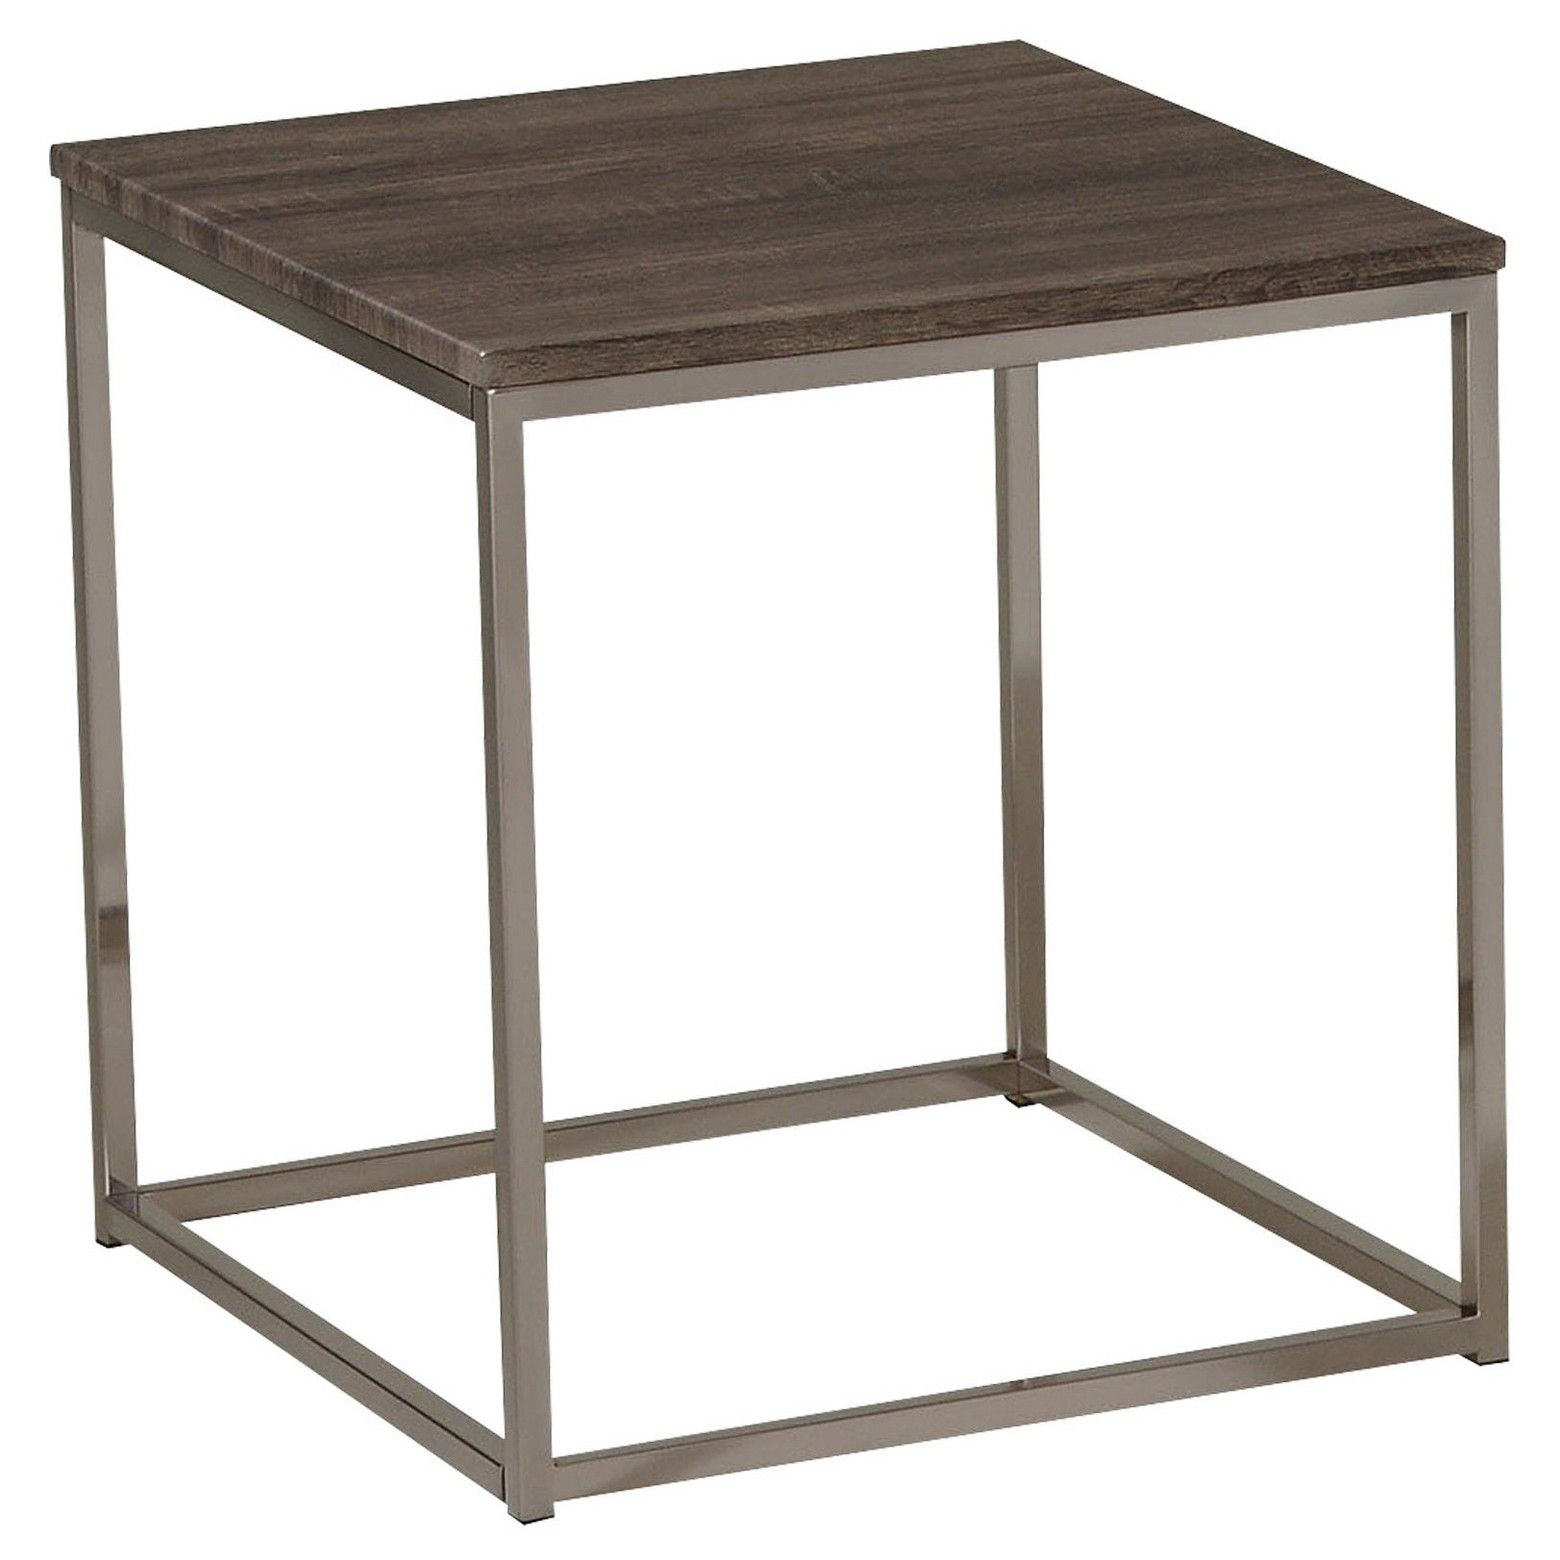 cecil end table walnut brushed nickel acme living room mixed material accent all about materials with the and try this modern maximize yoursquore nod patio beverage cooler side